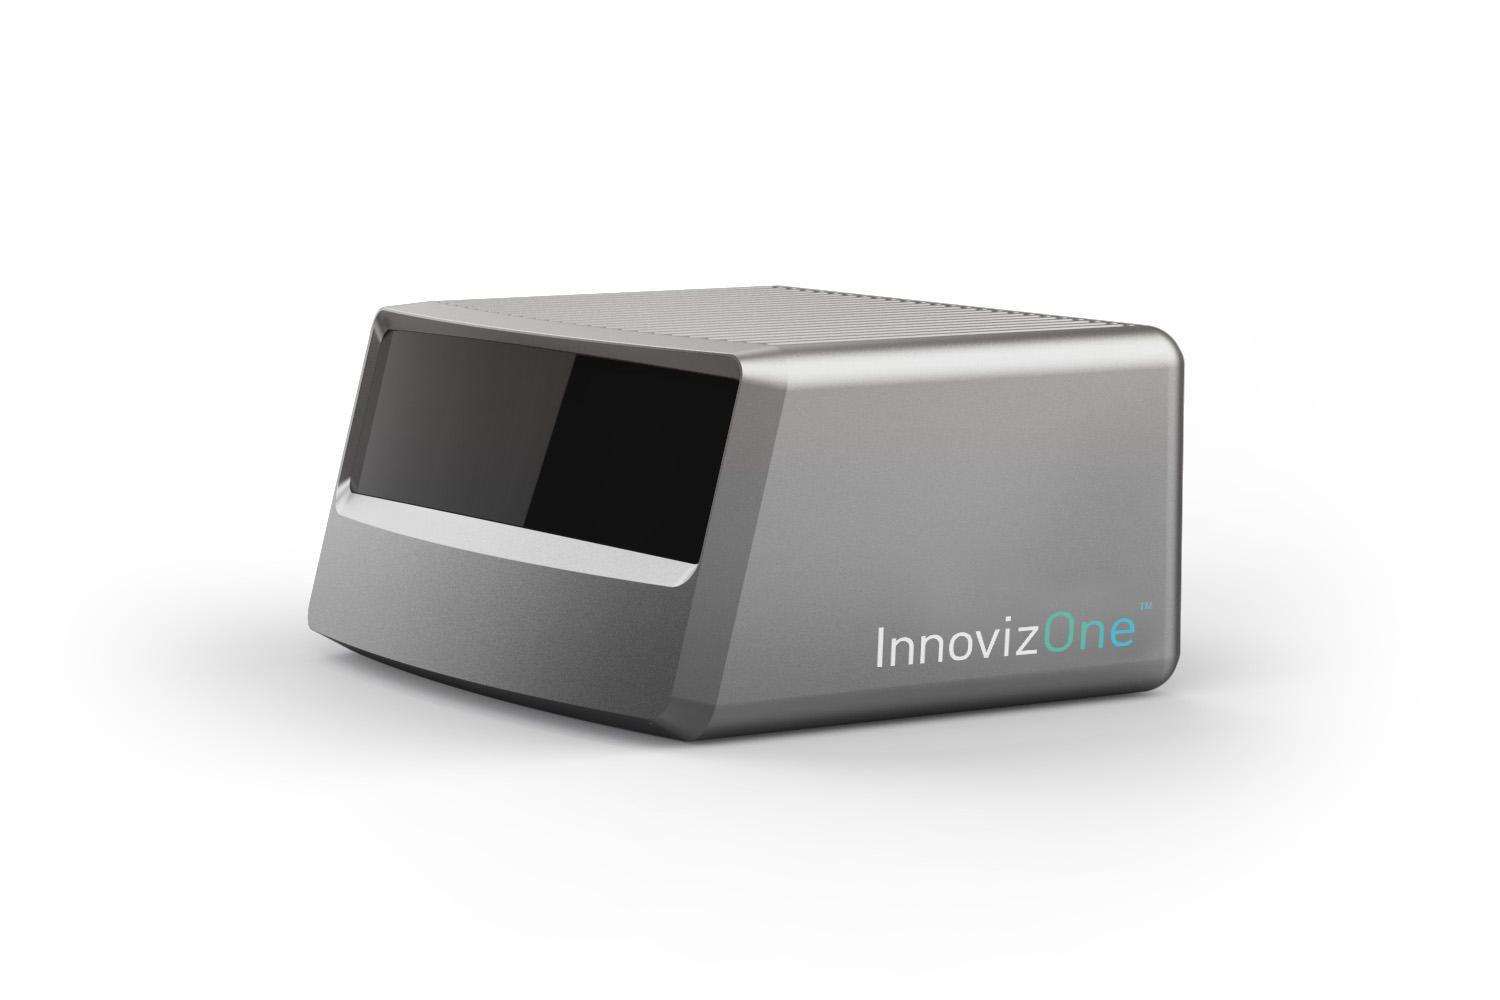 Innoviz and HARMAN Collaborate to Make Industry-Leading LiDAR Solutions